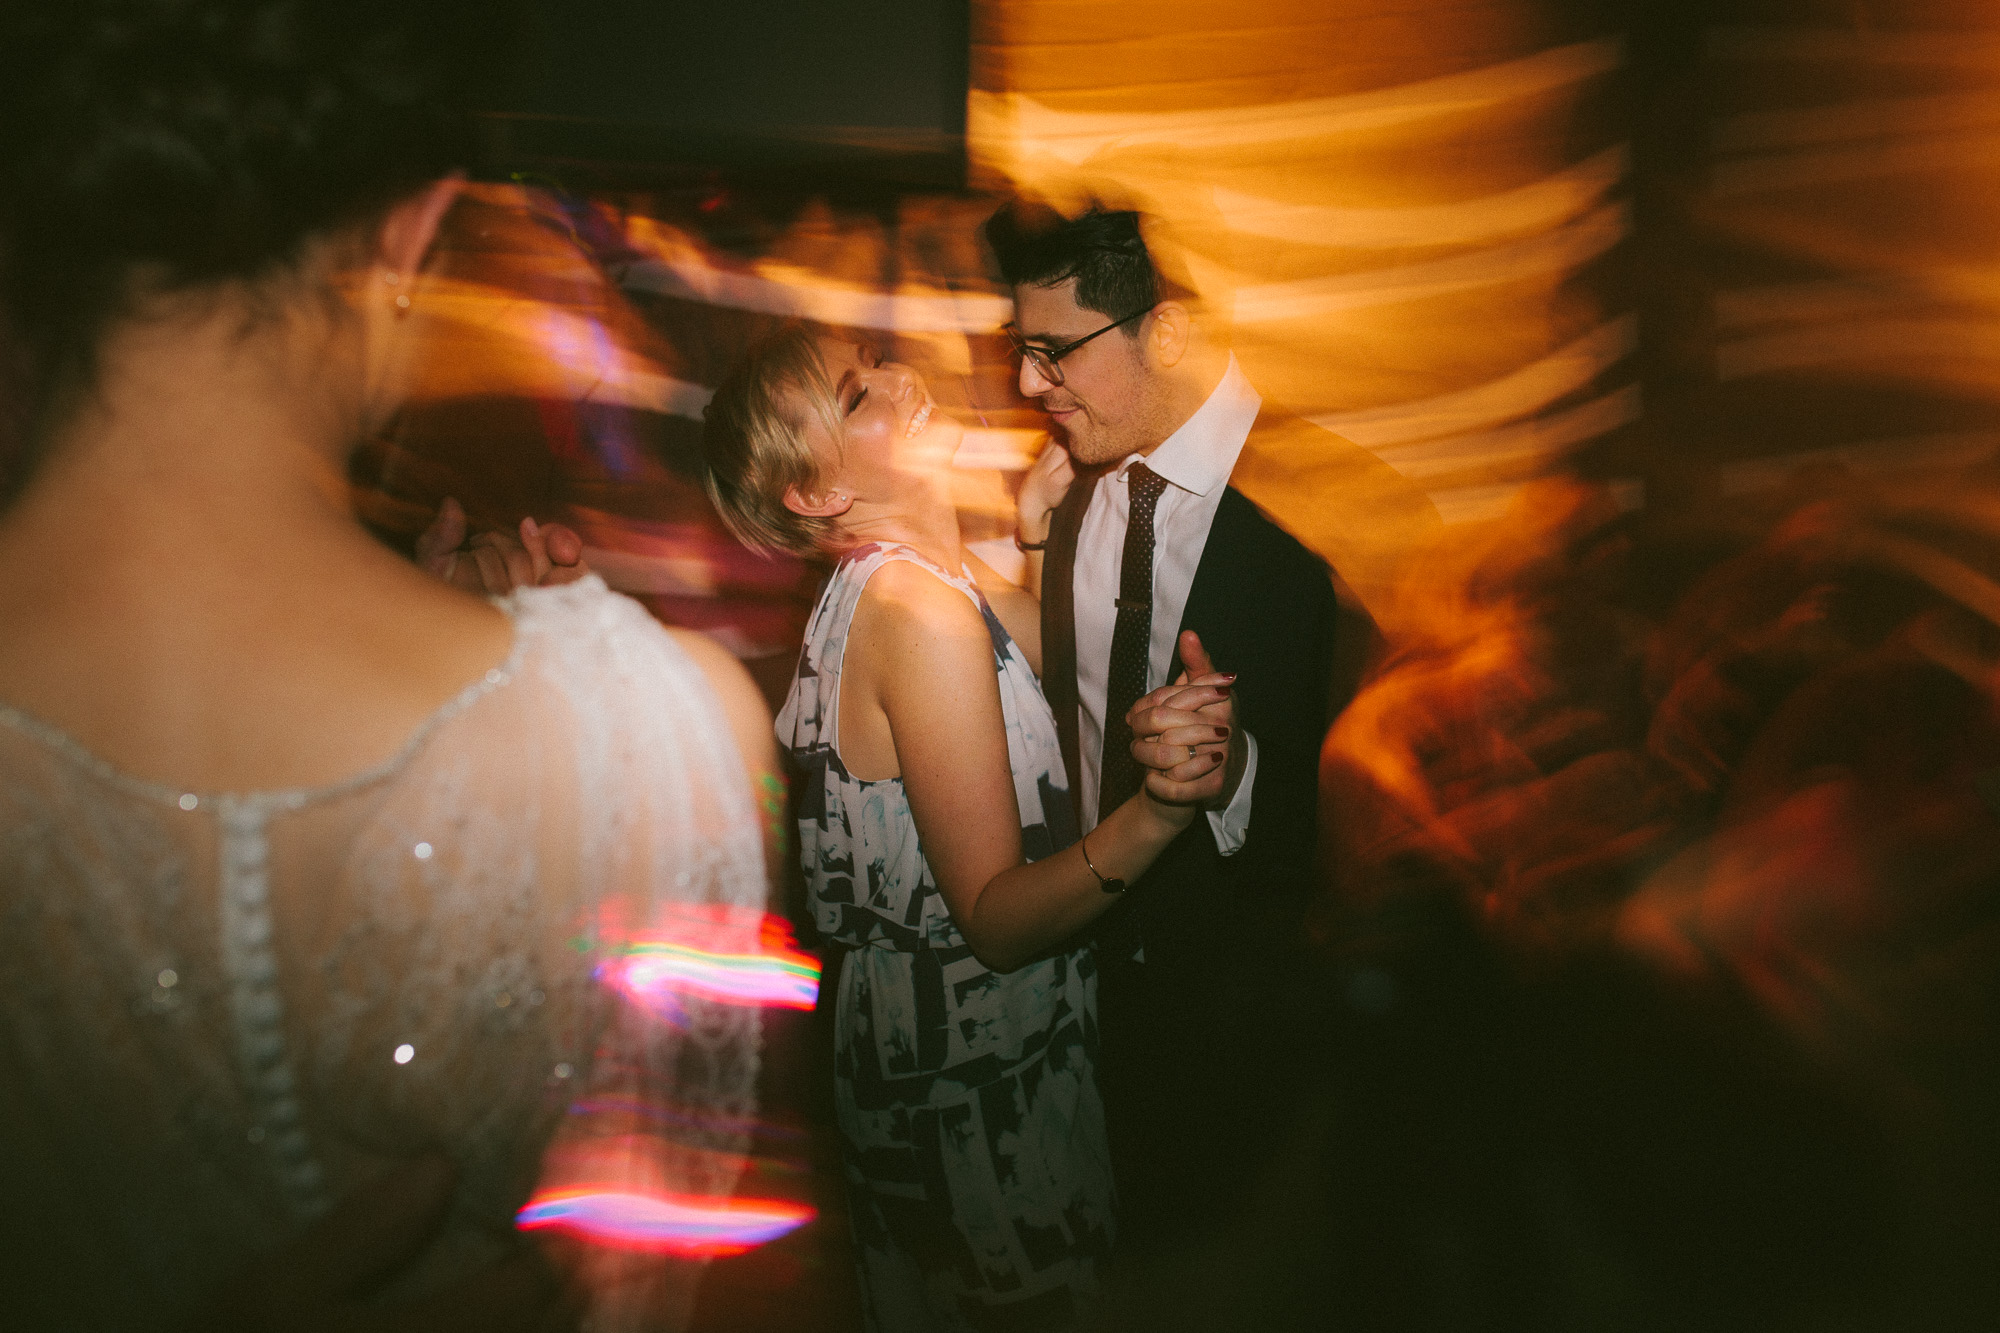 Jason-Charlotte-Melbourne-Quirky-Urban-Alternative-Wedding-Photography-53